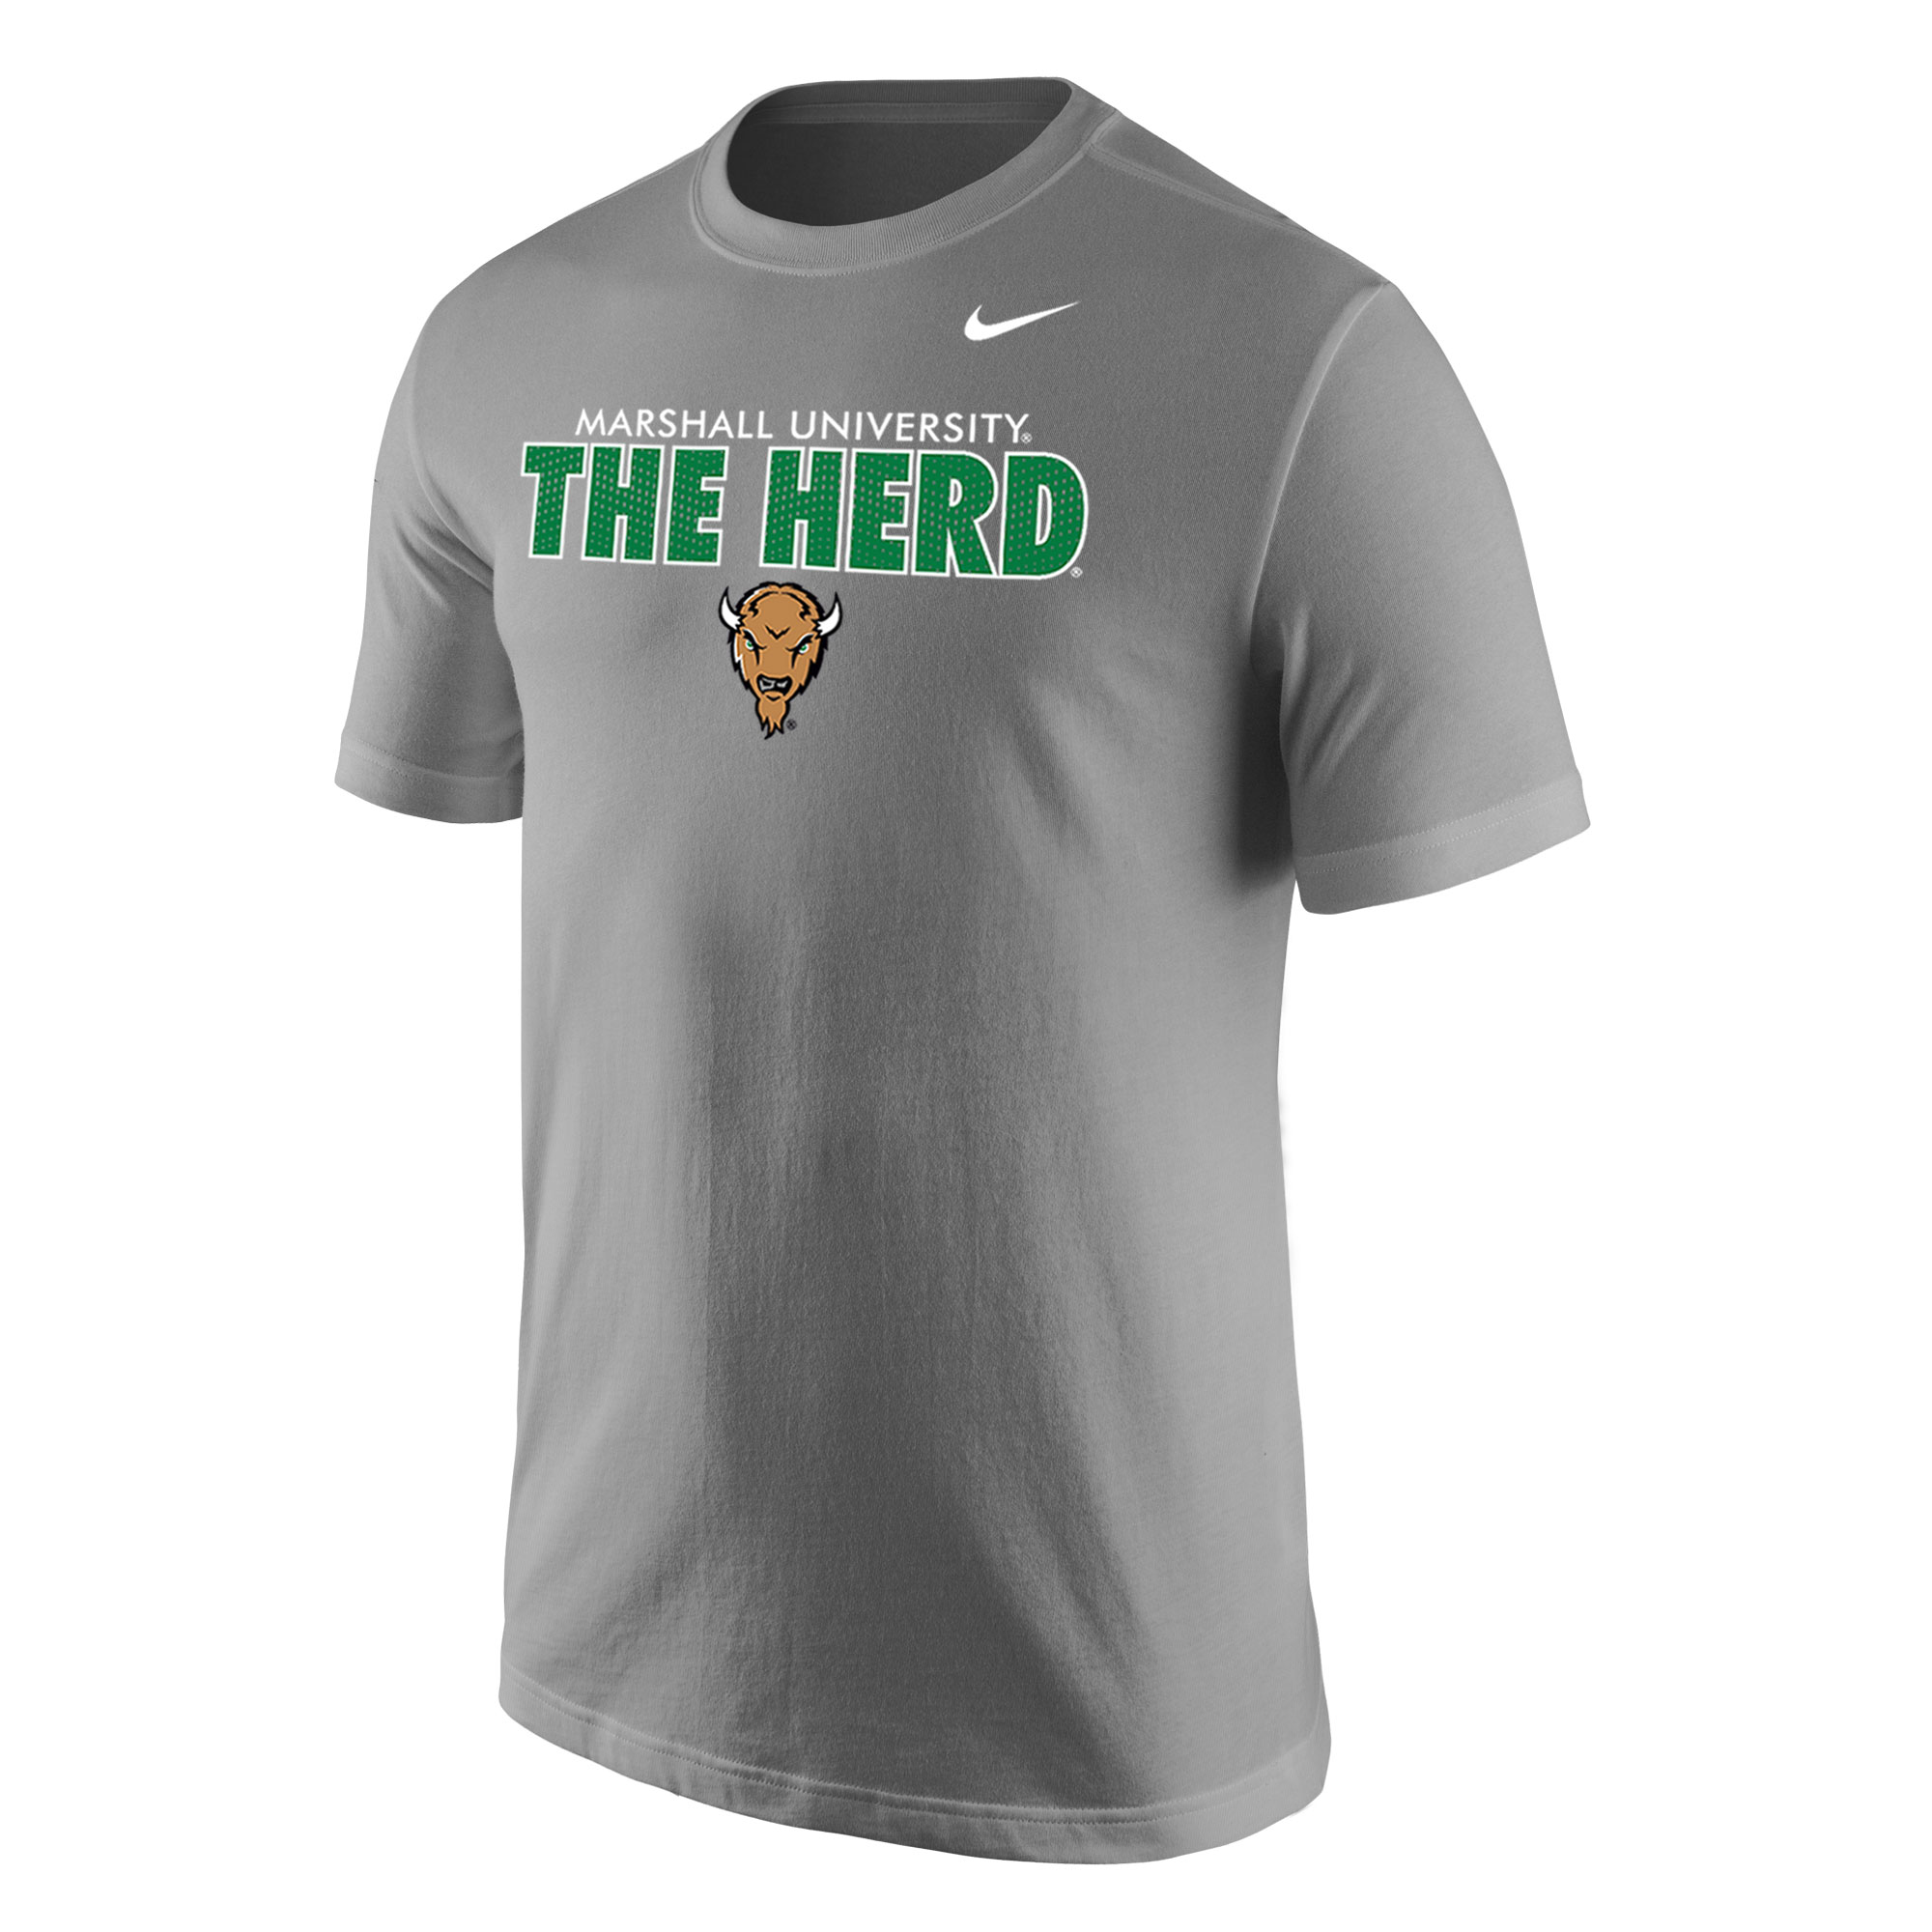 20335 <BR>MU THE HERD S/S <BR>SALE $13.99